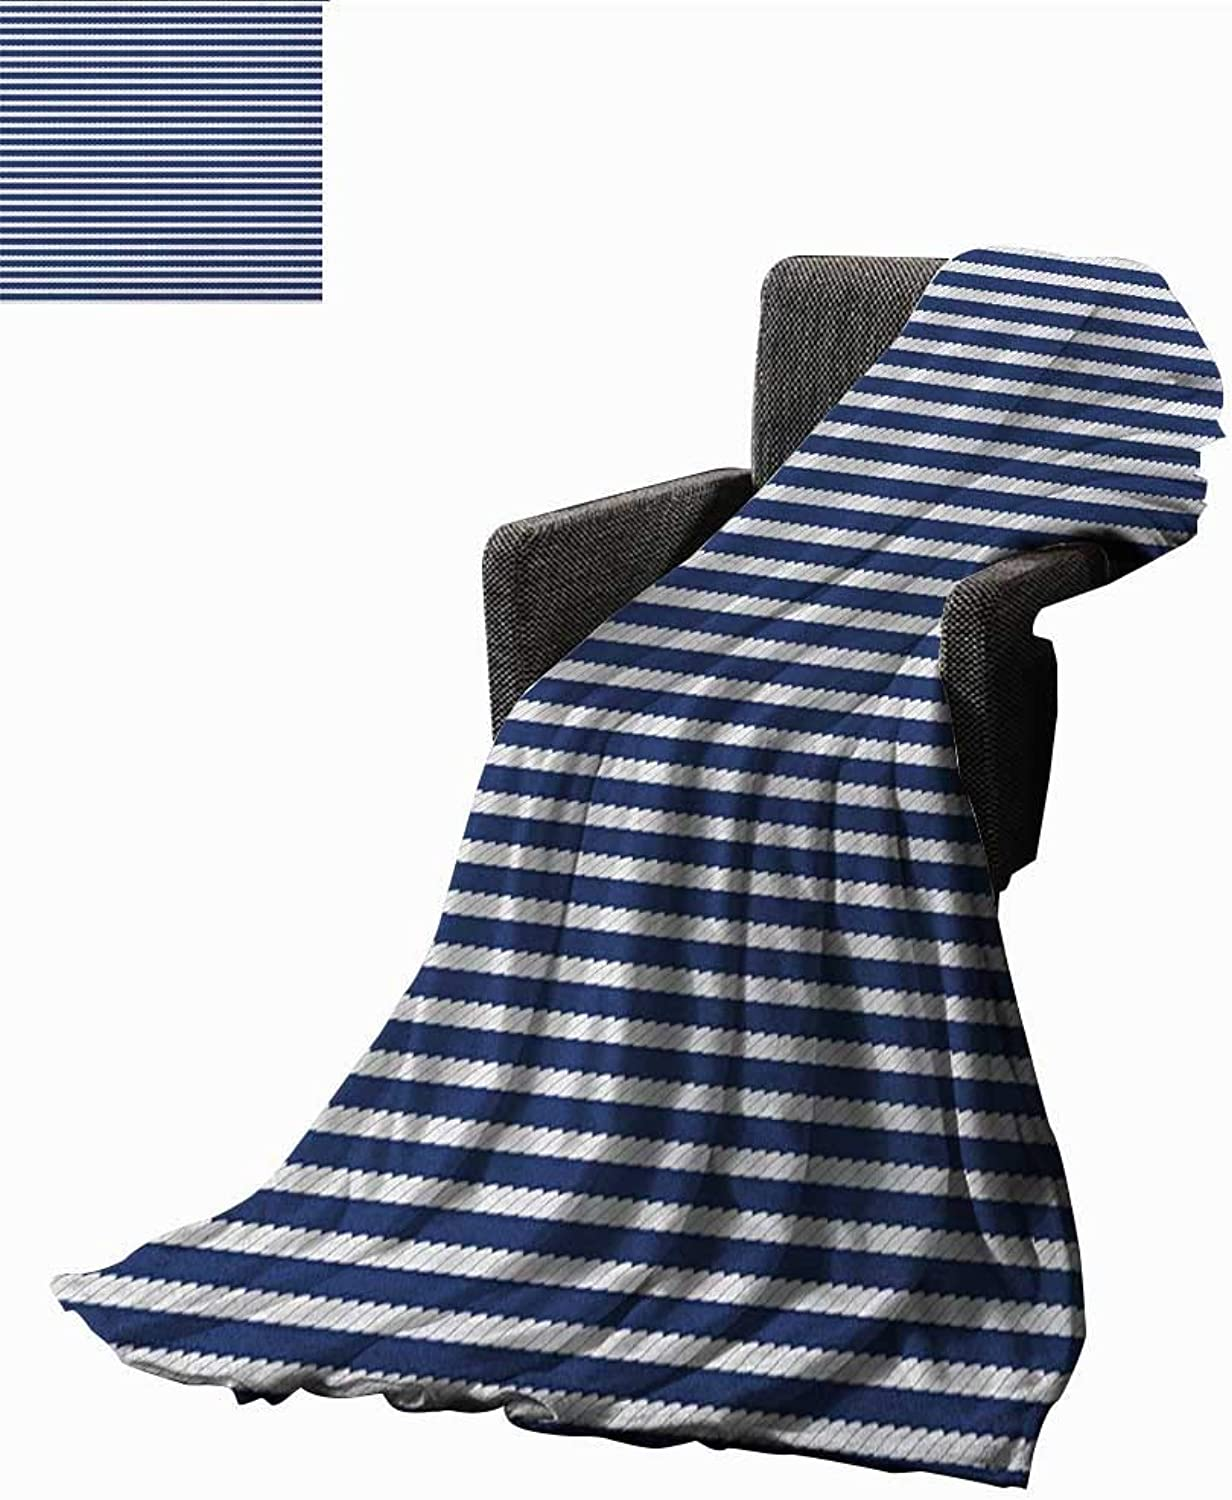 WilliamsDecor Bed or Couch 60  x 35 Navy bluee Lightweight Blanket Yacht Navy Marine Themed Rope Stripe Pattern on Dark bluee Background Print Summer Quilt Comforter Navy bluee and White